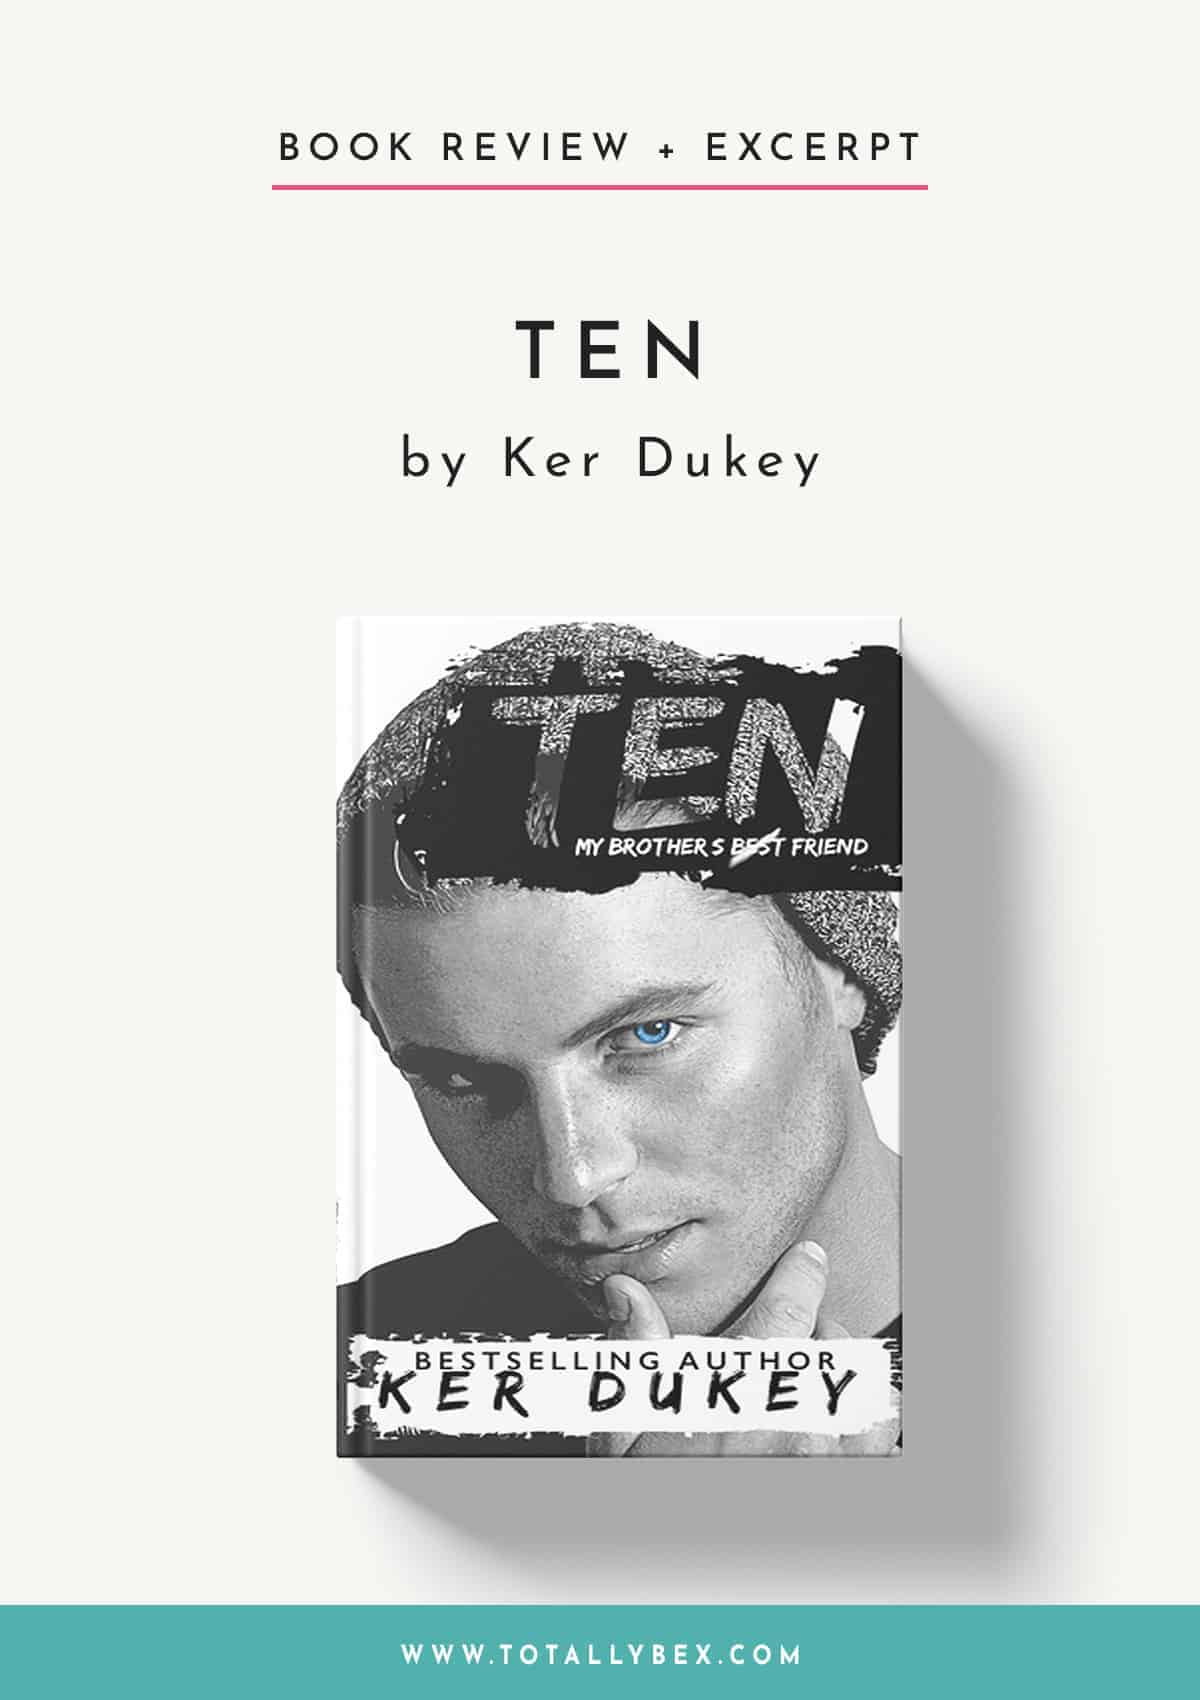 Ten by Ker Dukey-Book Review+Excerpt